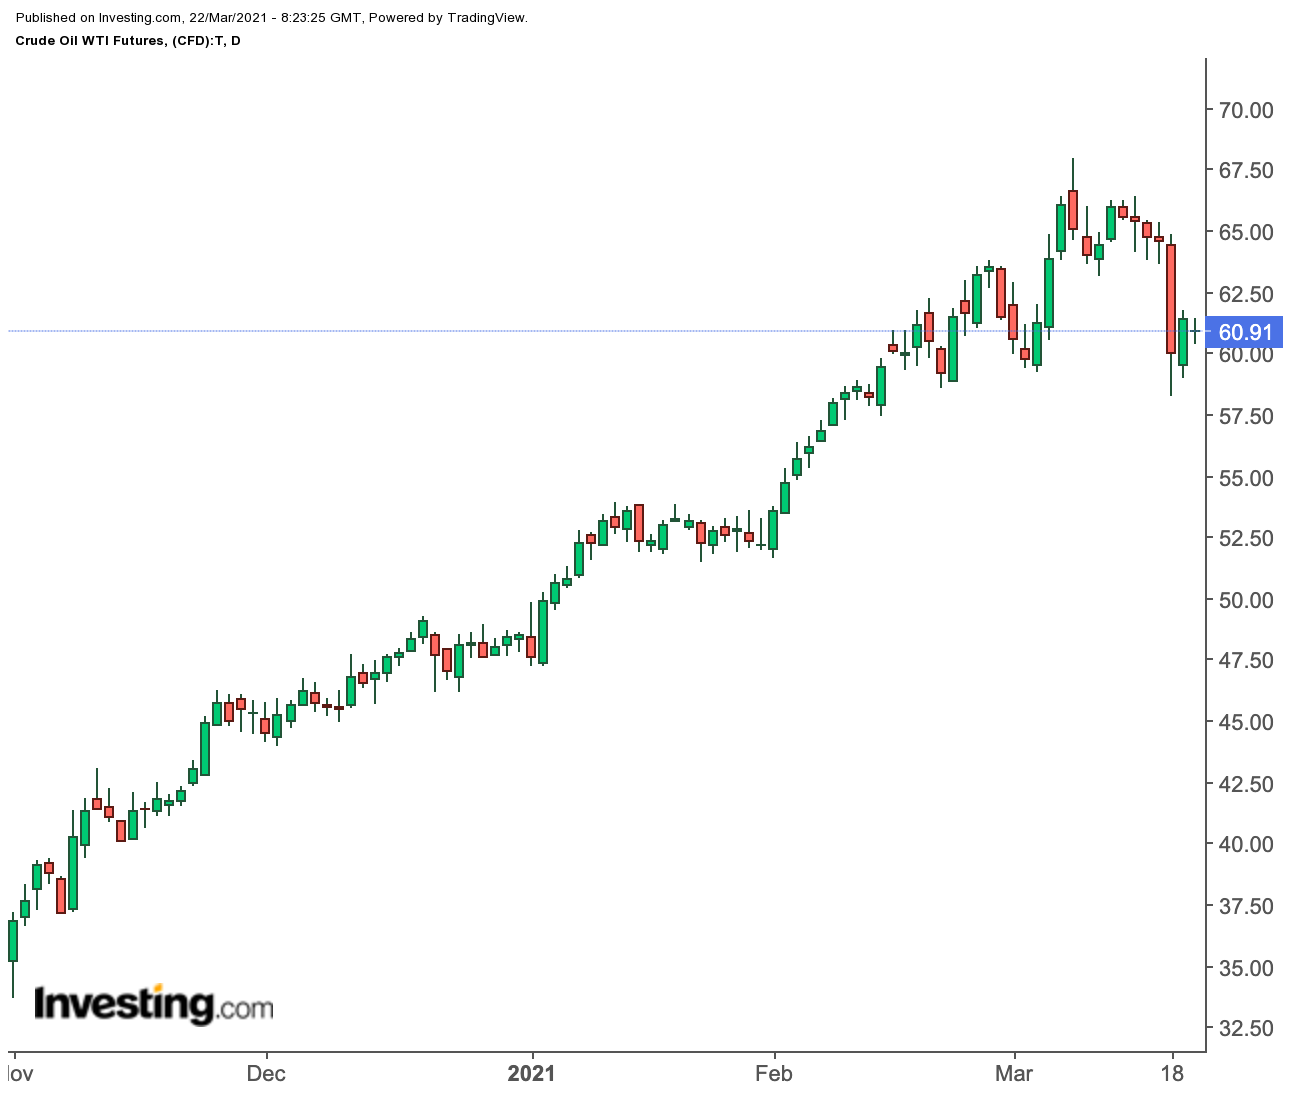 Oil Daily Chart